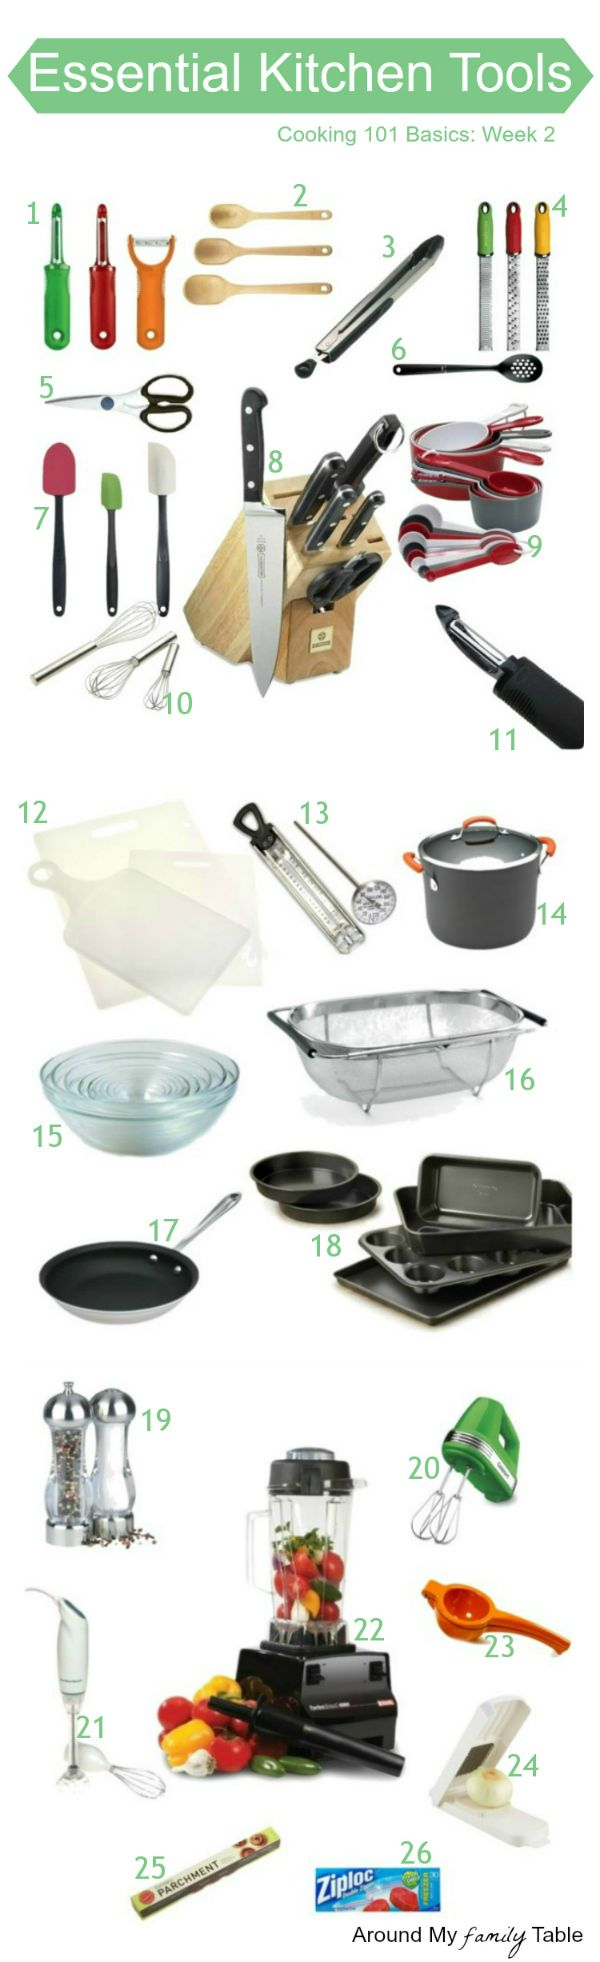 Uncategorized List Of Kitchen Utensils And Appliances cooking 101 basics week 2 tools of the trade gadgets kitchen and you should never be without